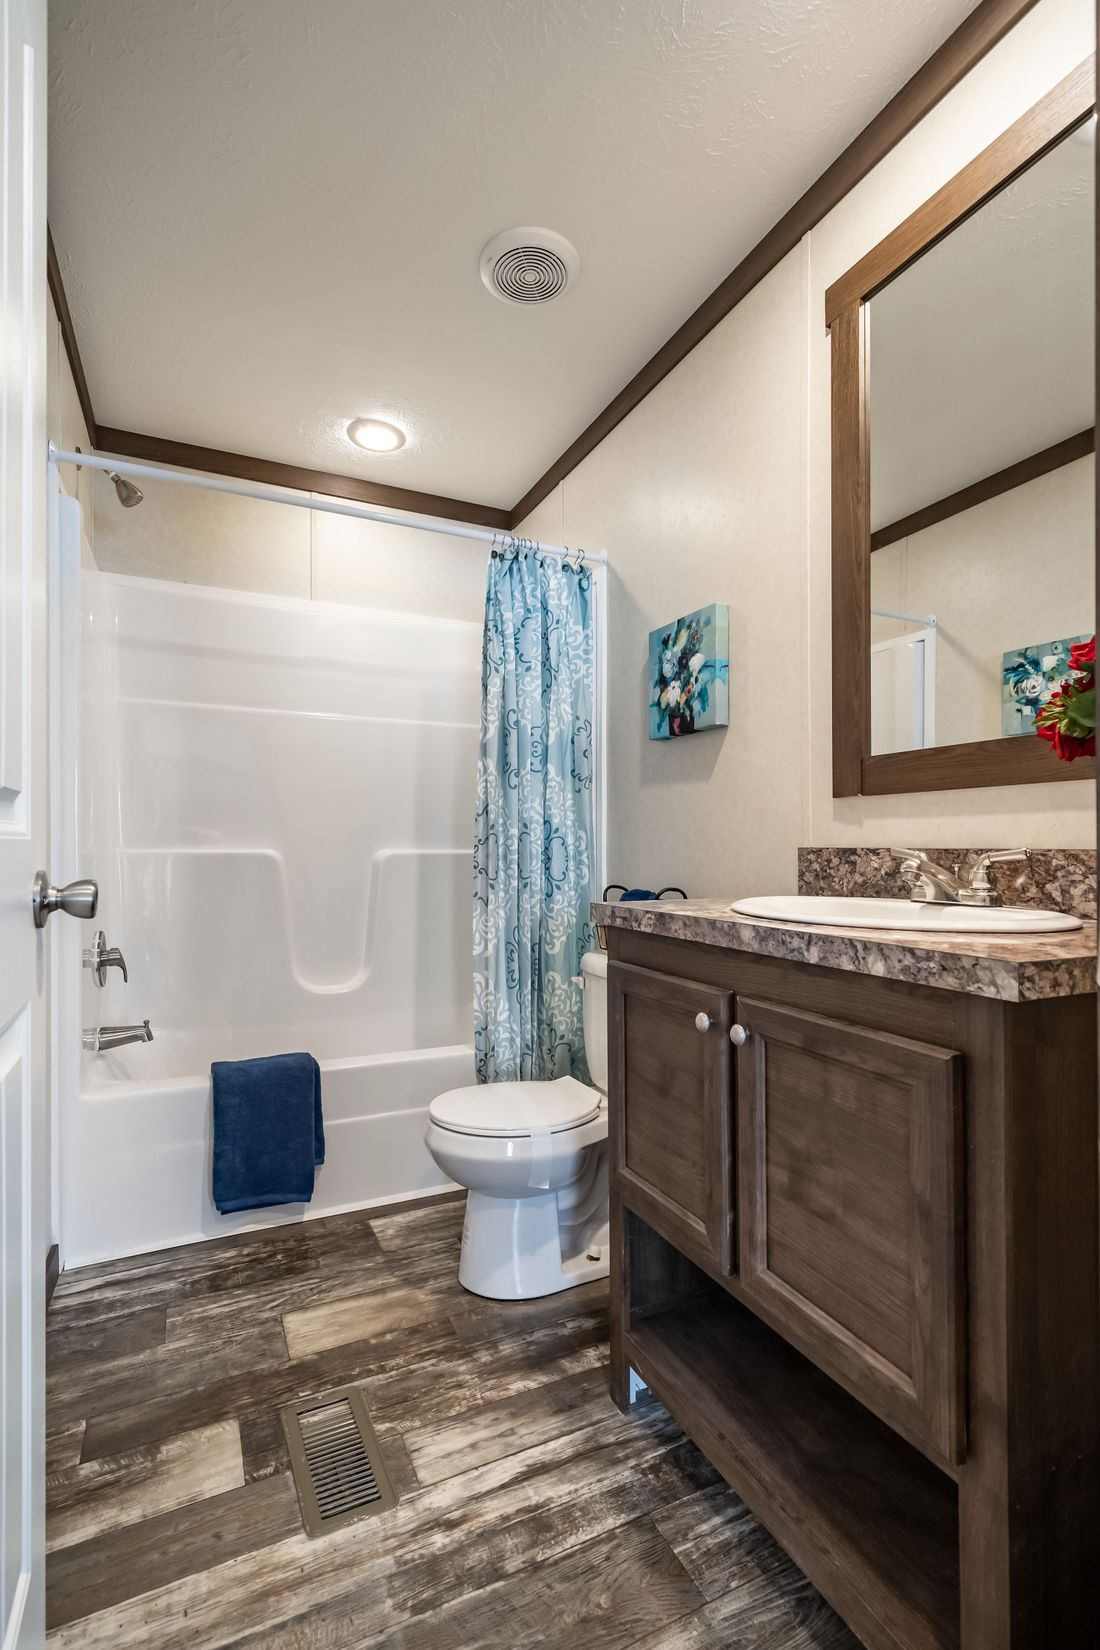 The THE RICHMOND Guest Bathroom. This Manufactured Mobile Home features 3 bedrooms and 2 baths.